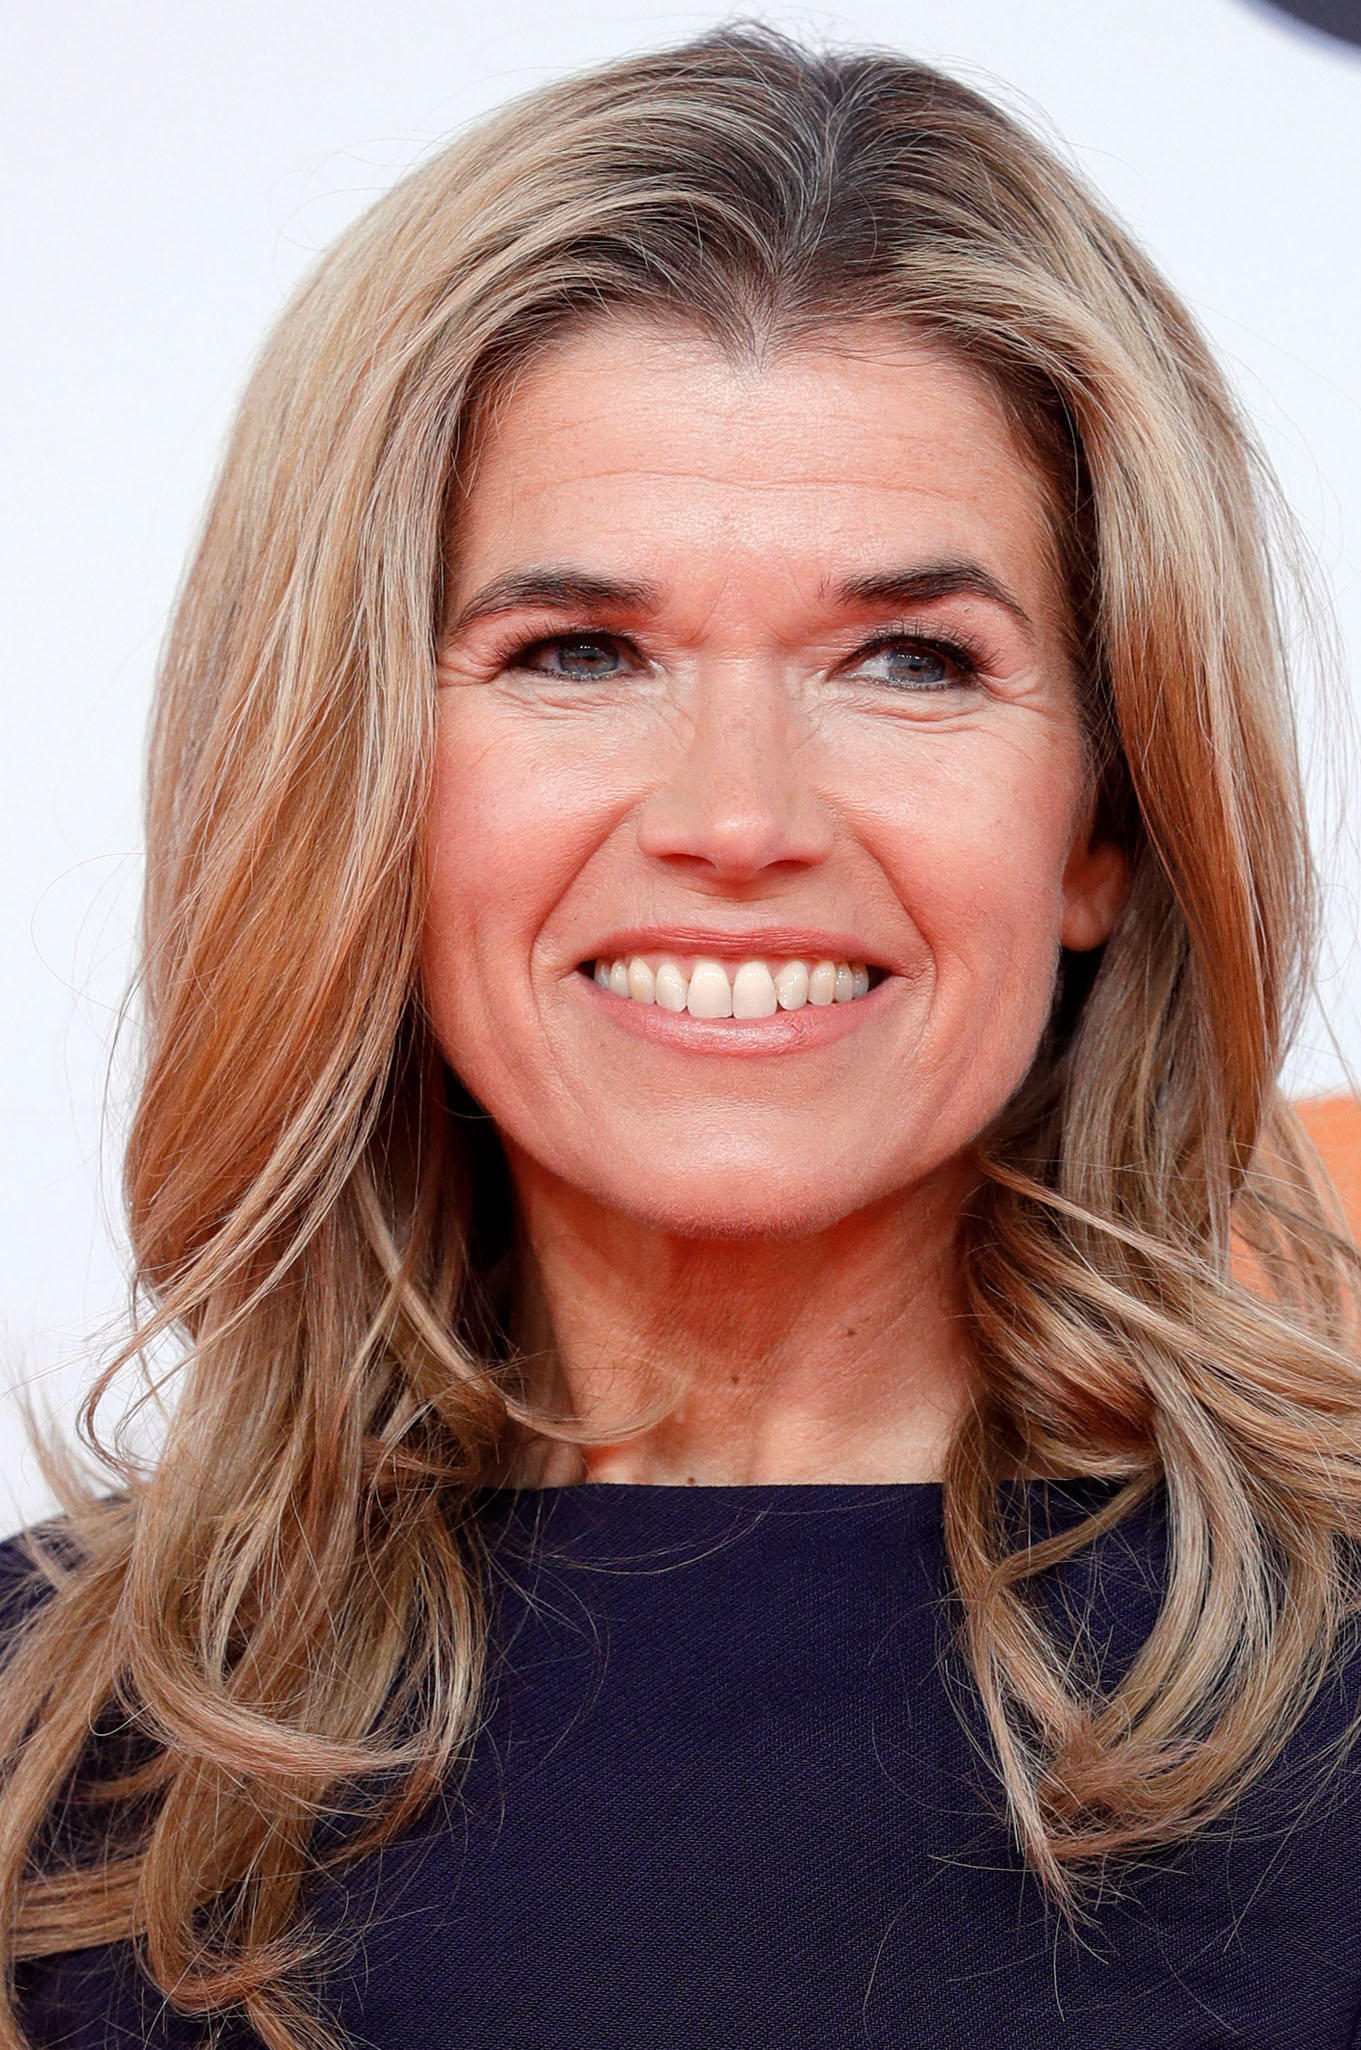 Anke Engelke Pictures and Photos | Fandango